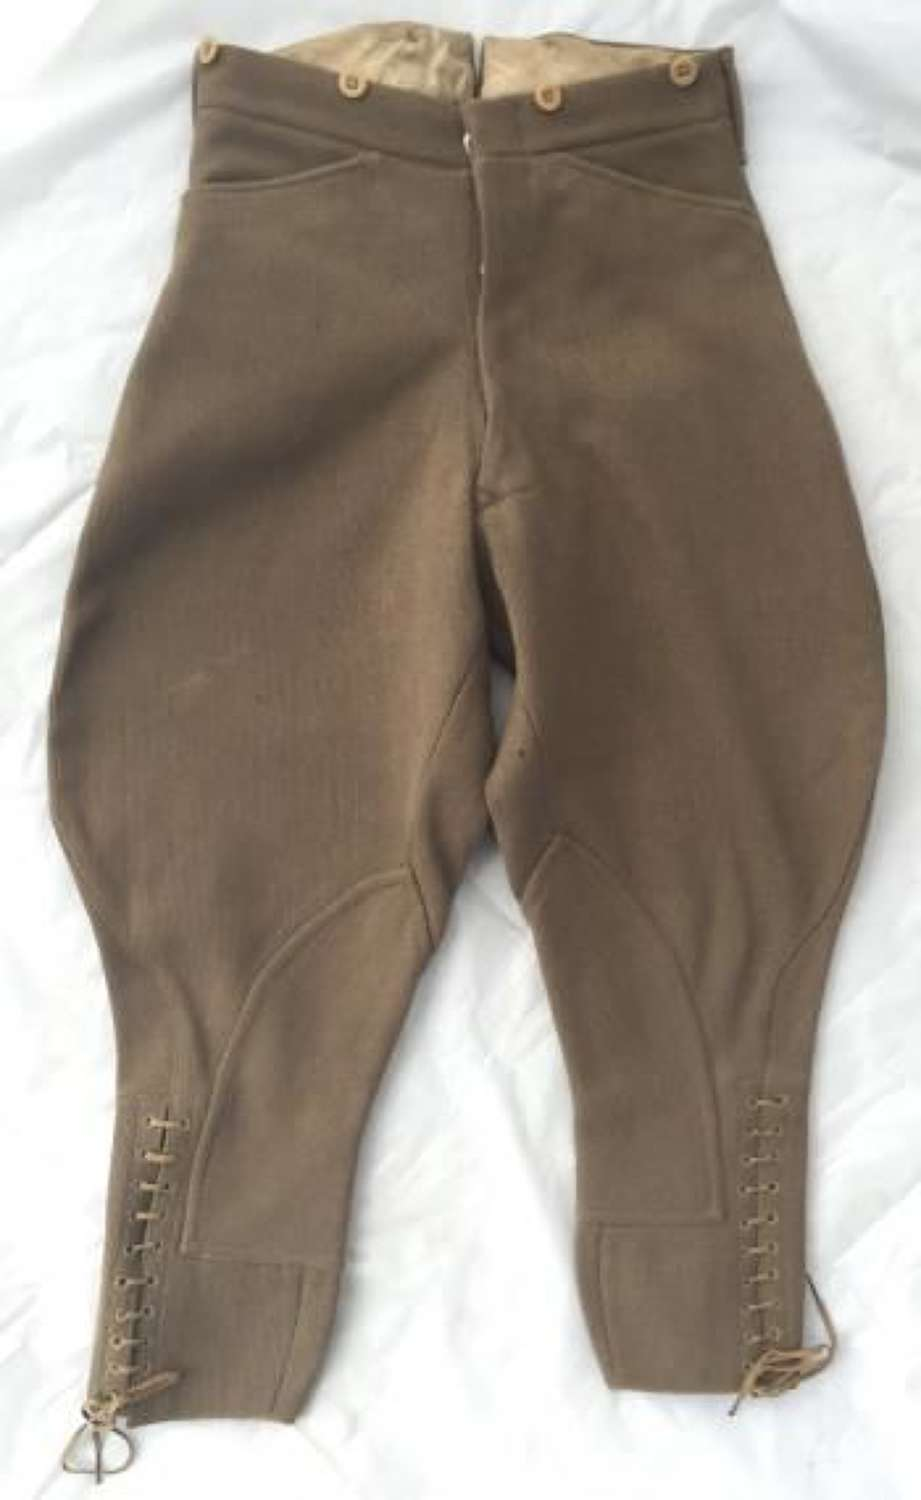 C.1930s British Army Officers Breeches by 'Pytchley'